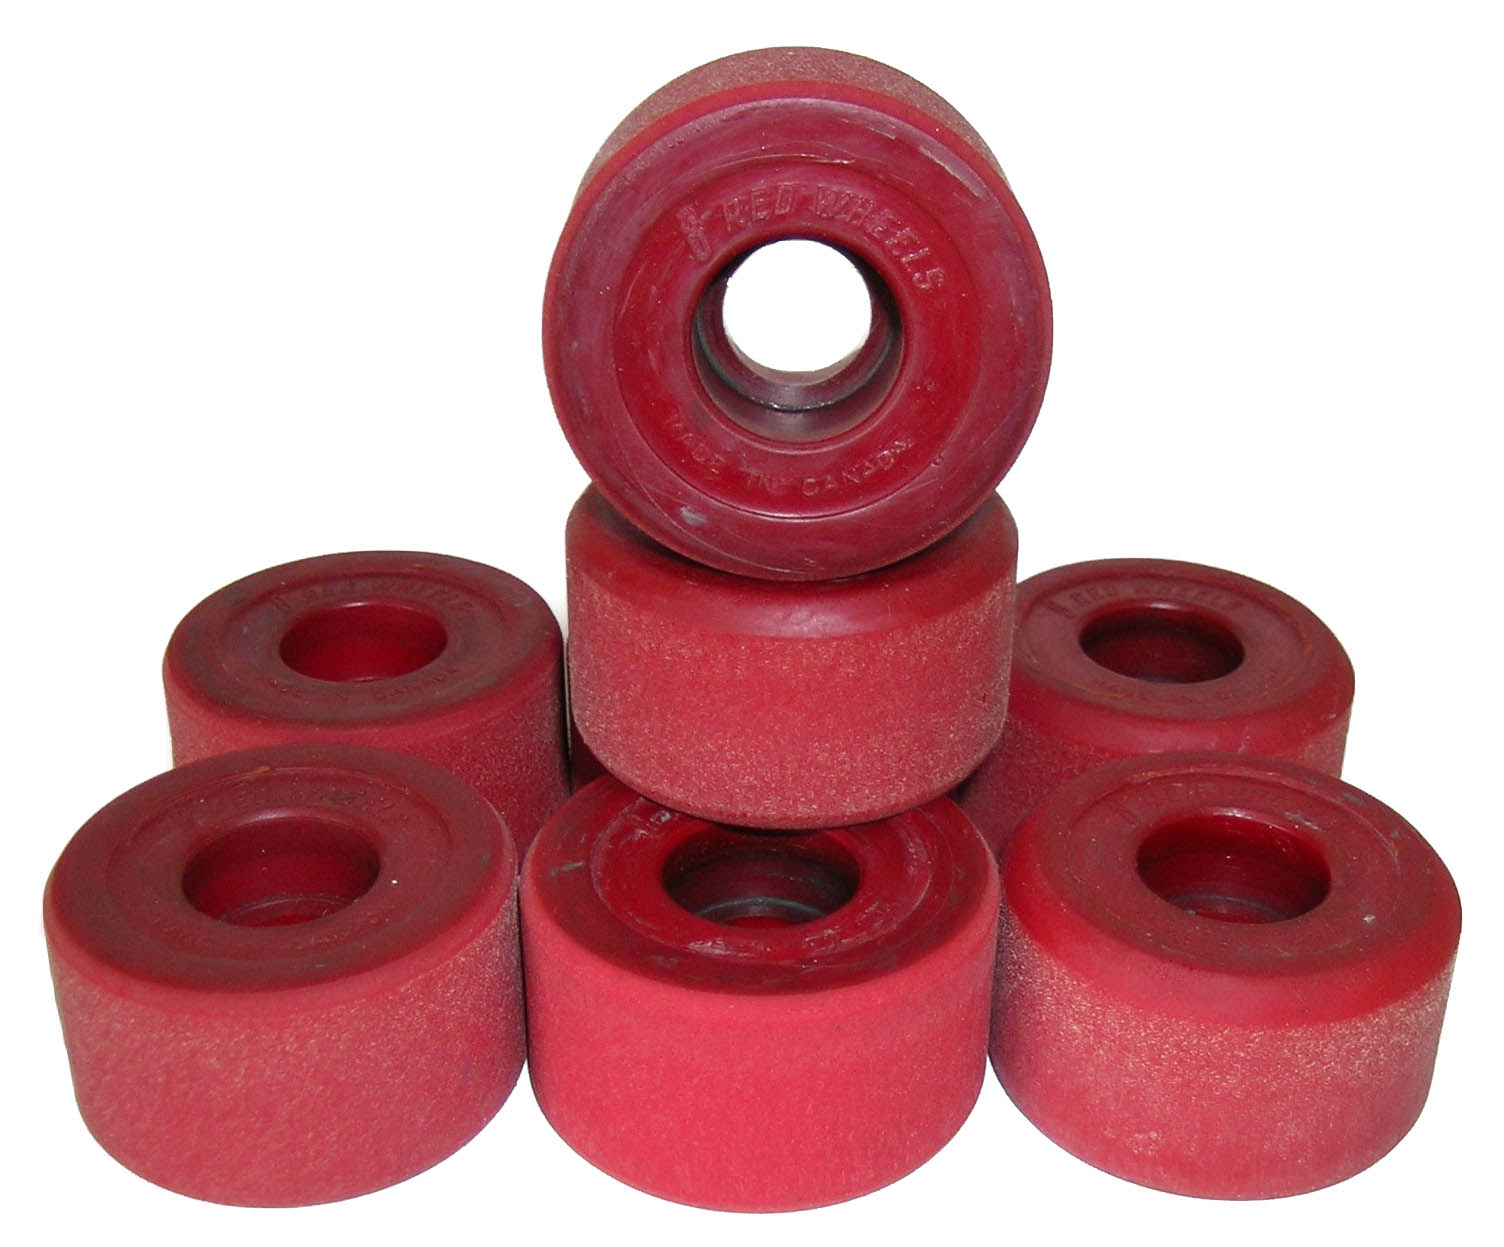 Roller shoes canada - Canadian Reds Vintage Roller Skate Wheels Brick Red Thumbnail 1